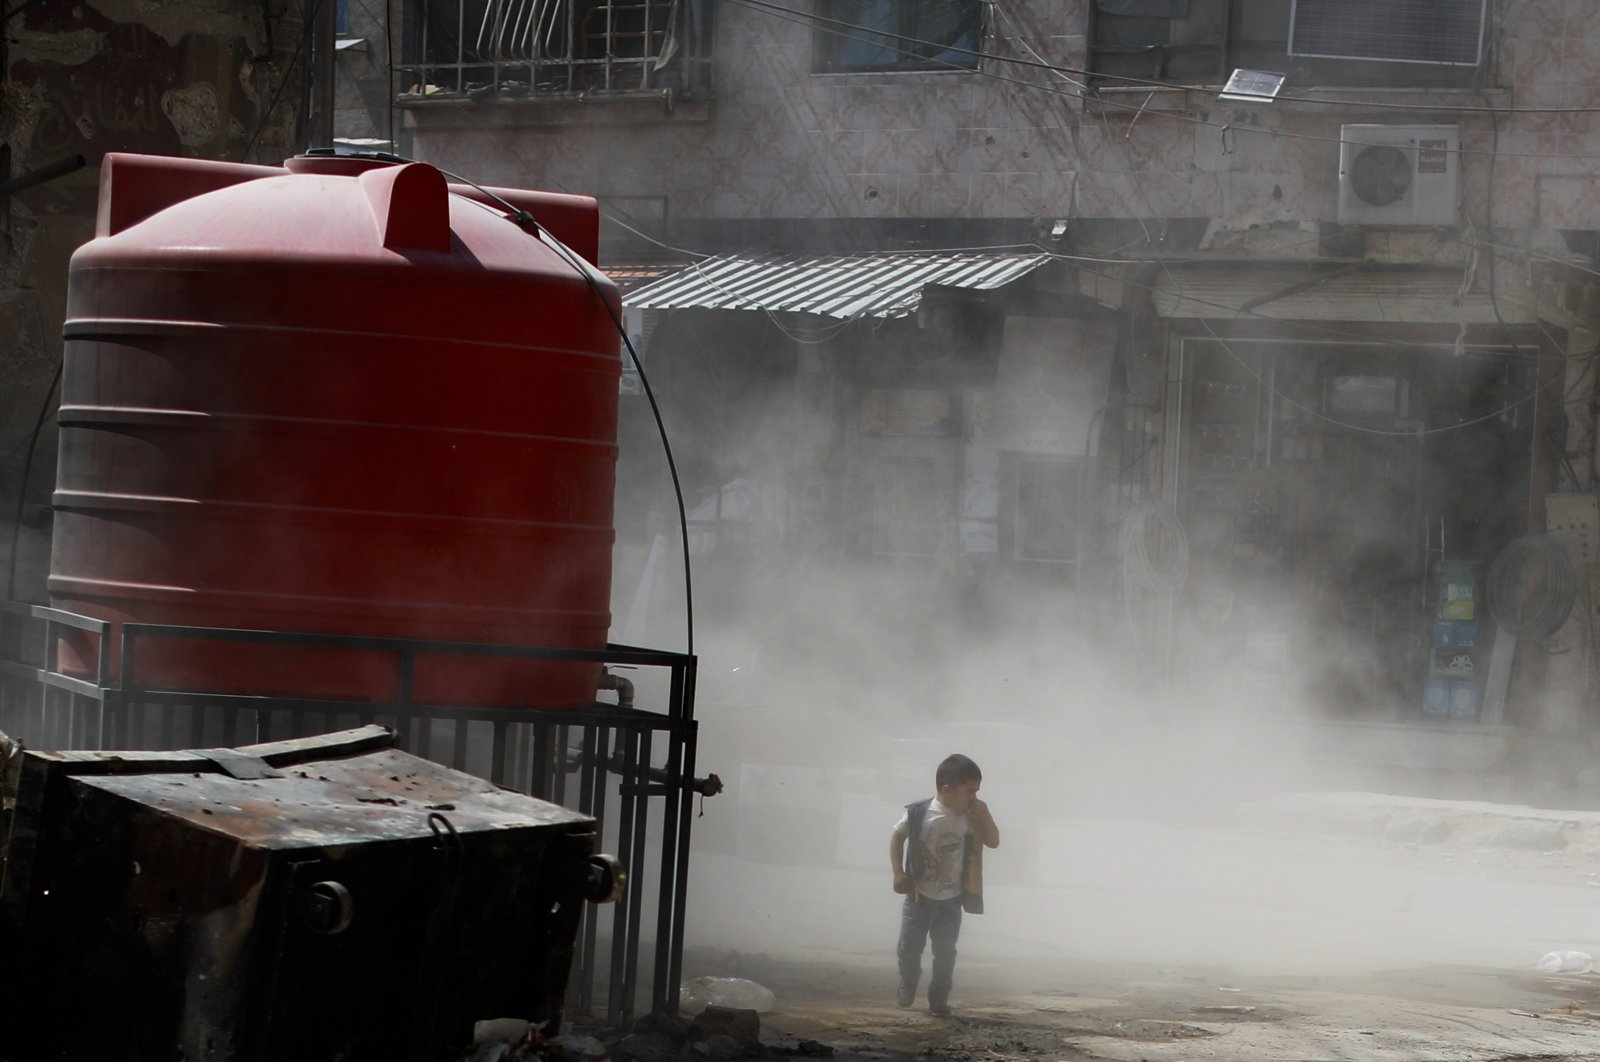 In this Sunday, July 15, 2018, photo, a Syrian boy walks amid a cloud of dust as a bulldozer remove debris from destroyed buildings, in the town of Douma in the eastern Ghouta region, near the Syrian capital Damascus. (AP File Photo)